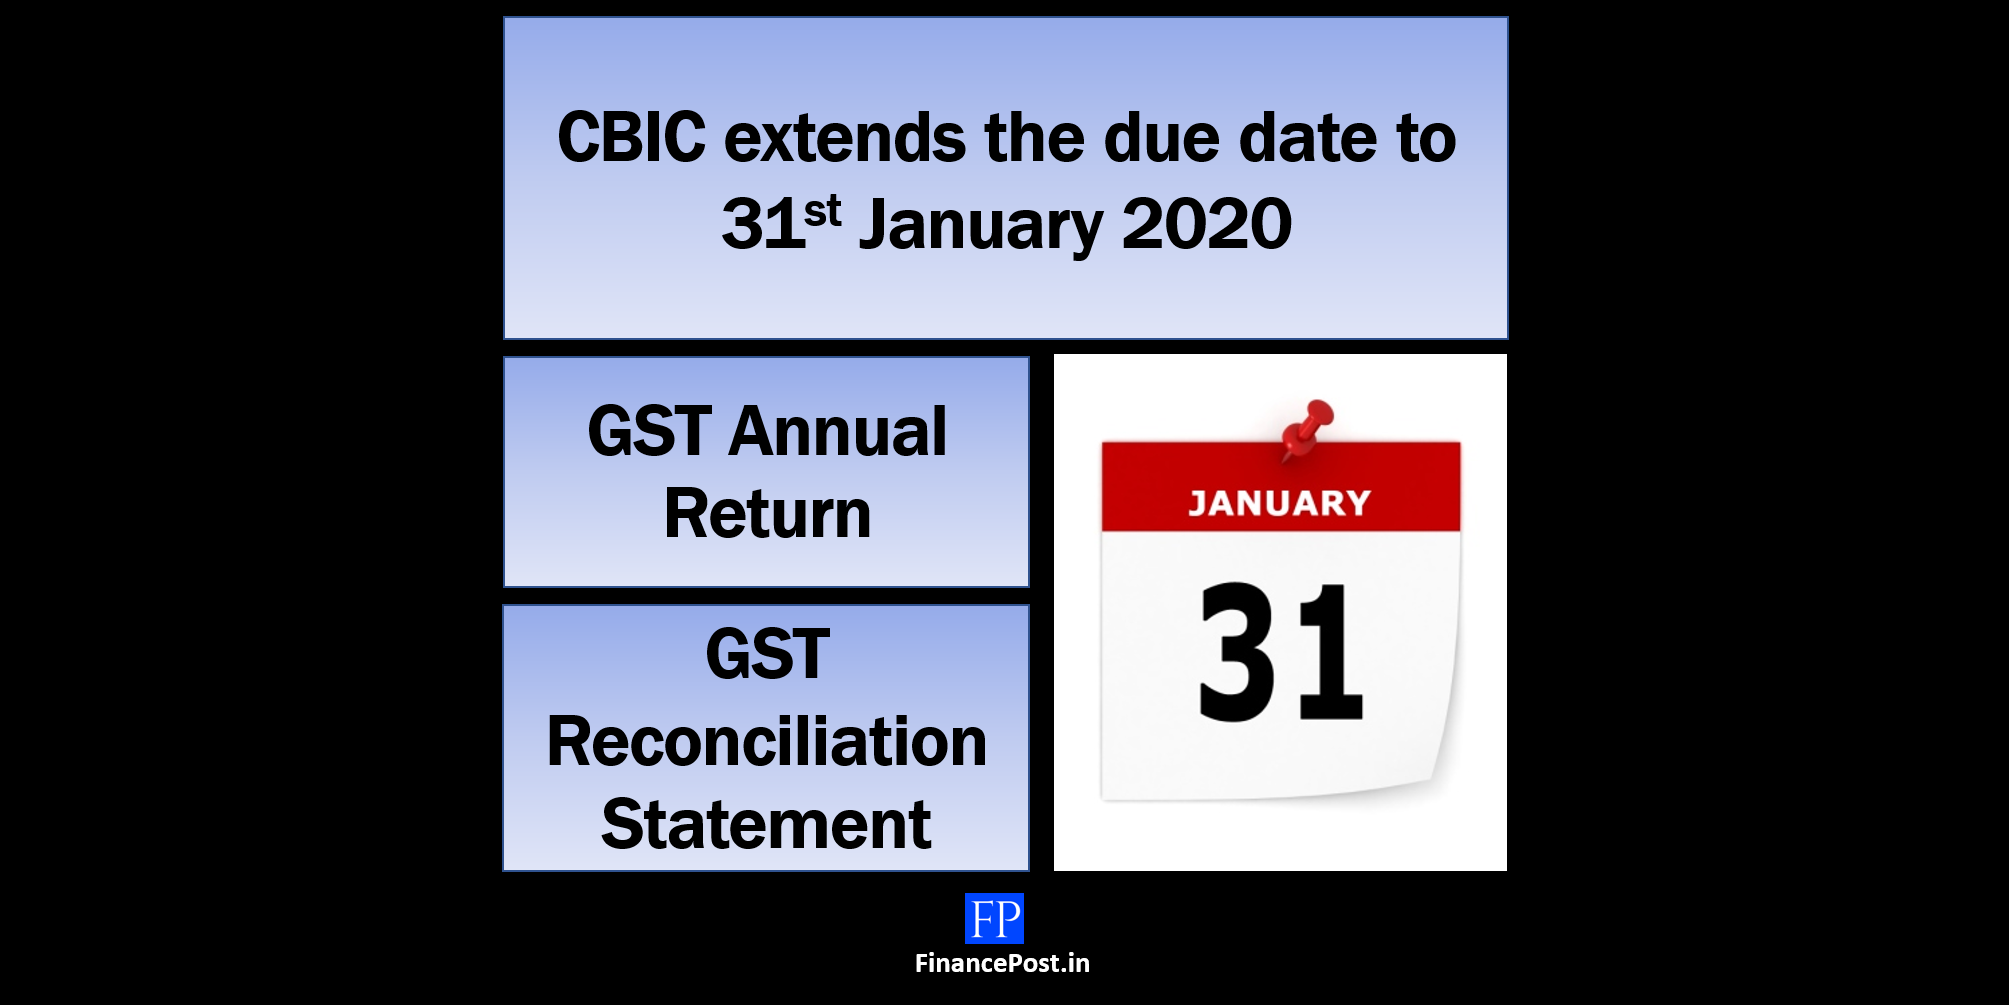 CBIC further extends the due date for GSTR 9 and GSTR 9C